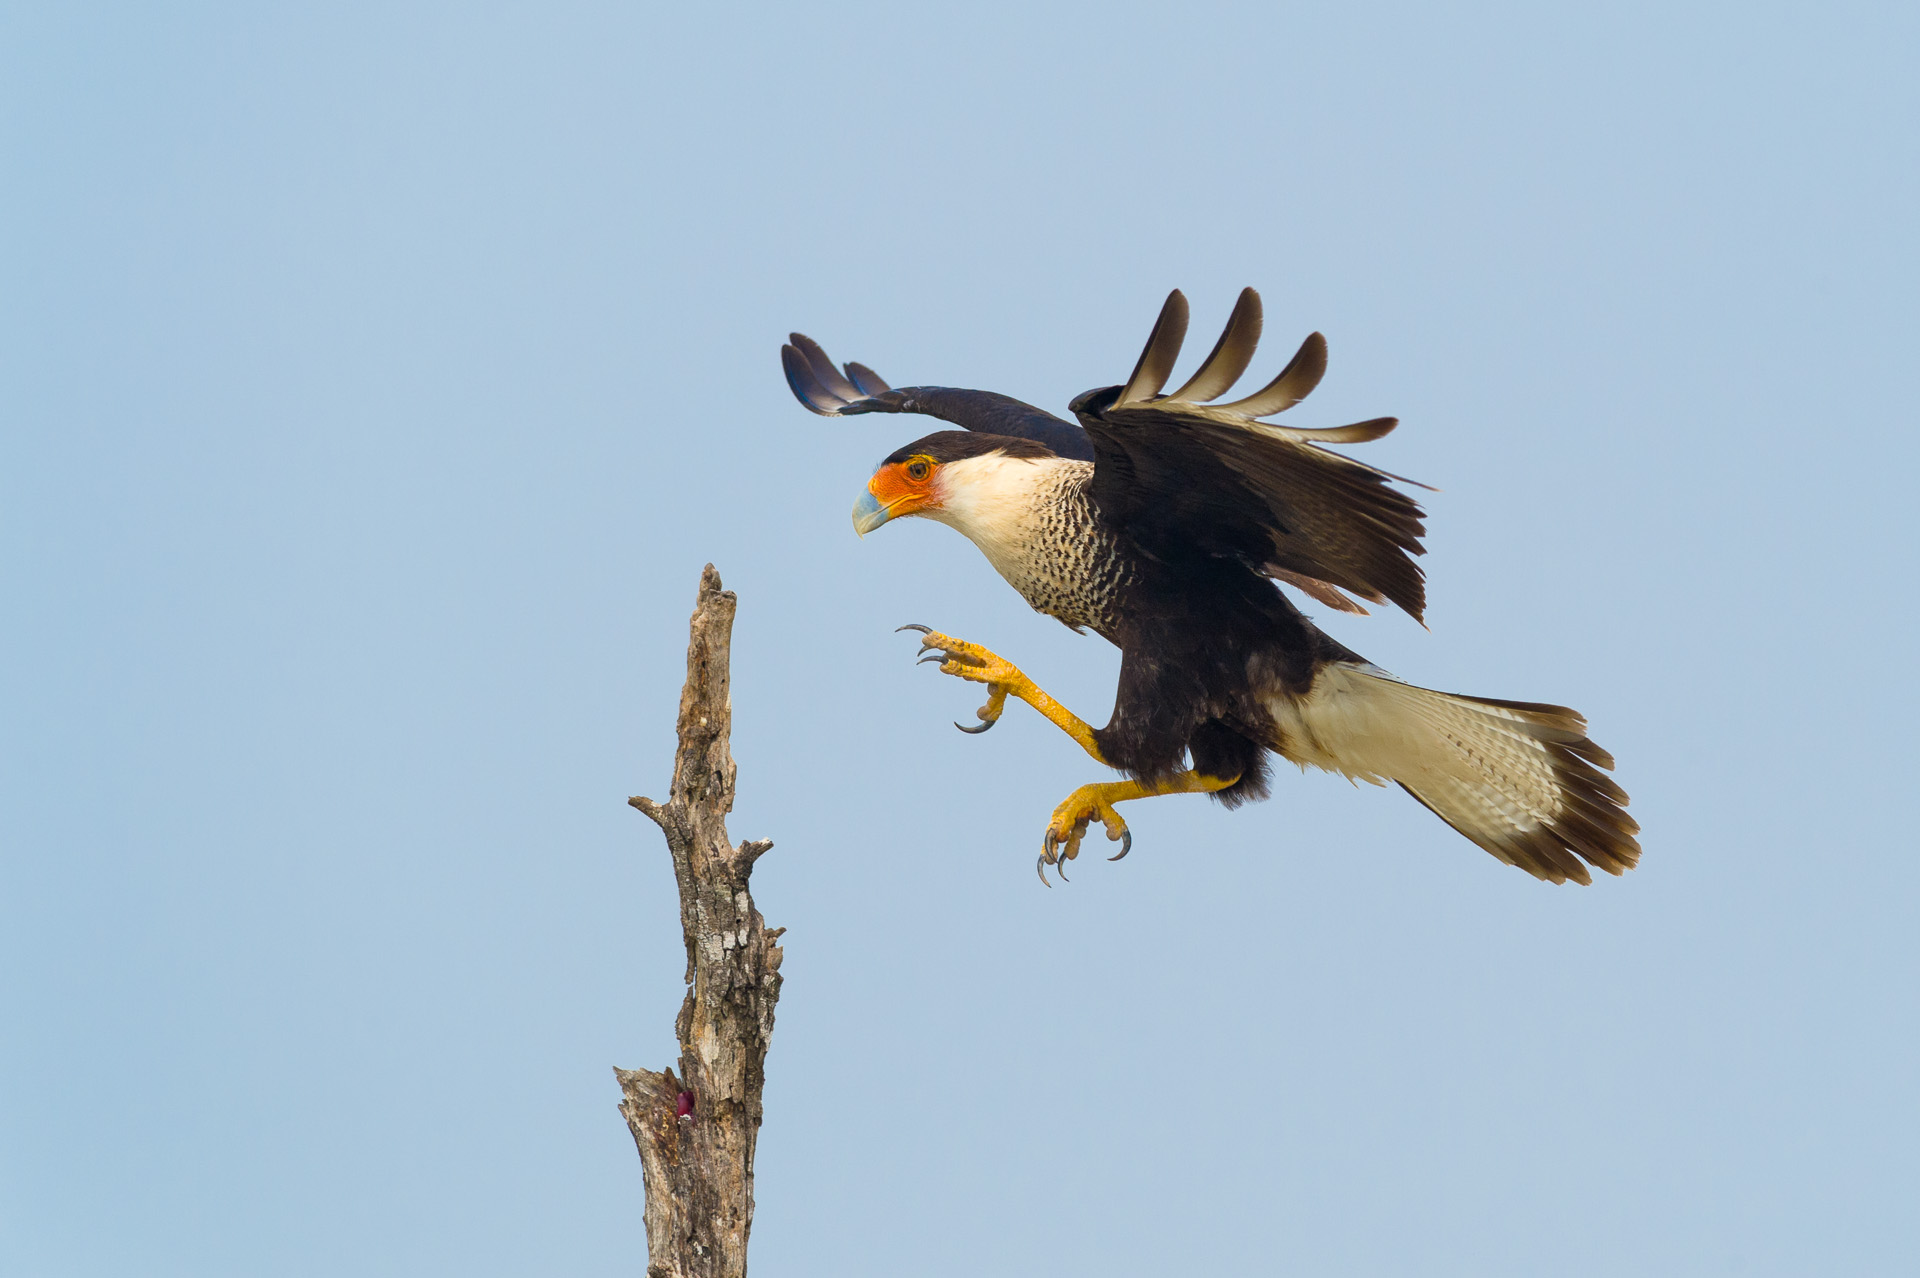 Crested caracara in the Rio Grande Valley, Texas.